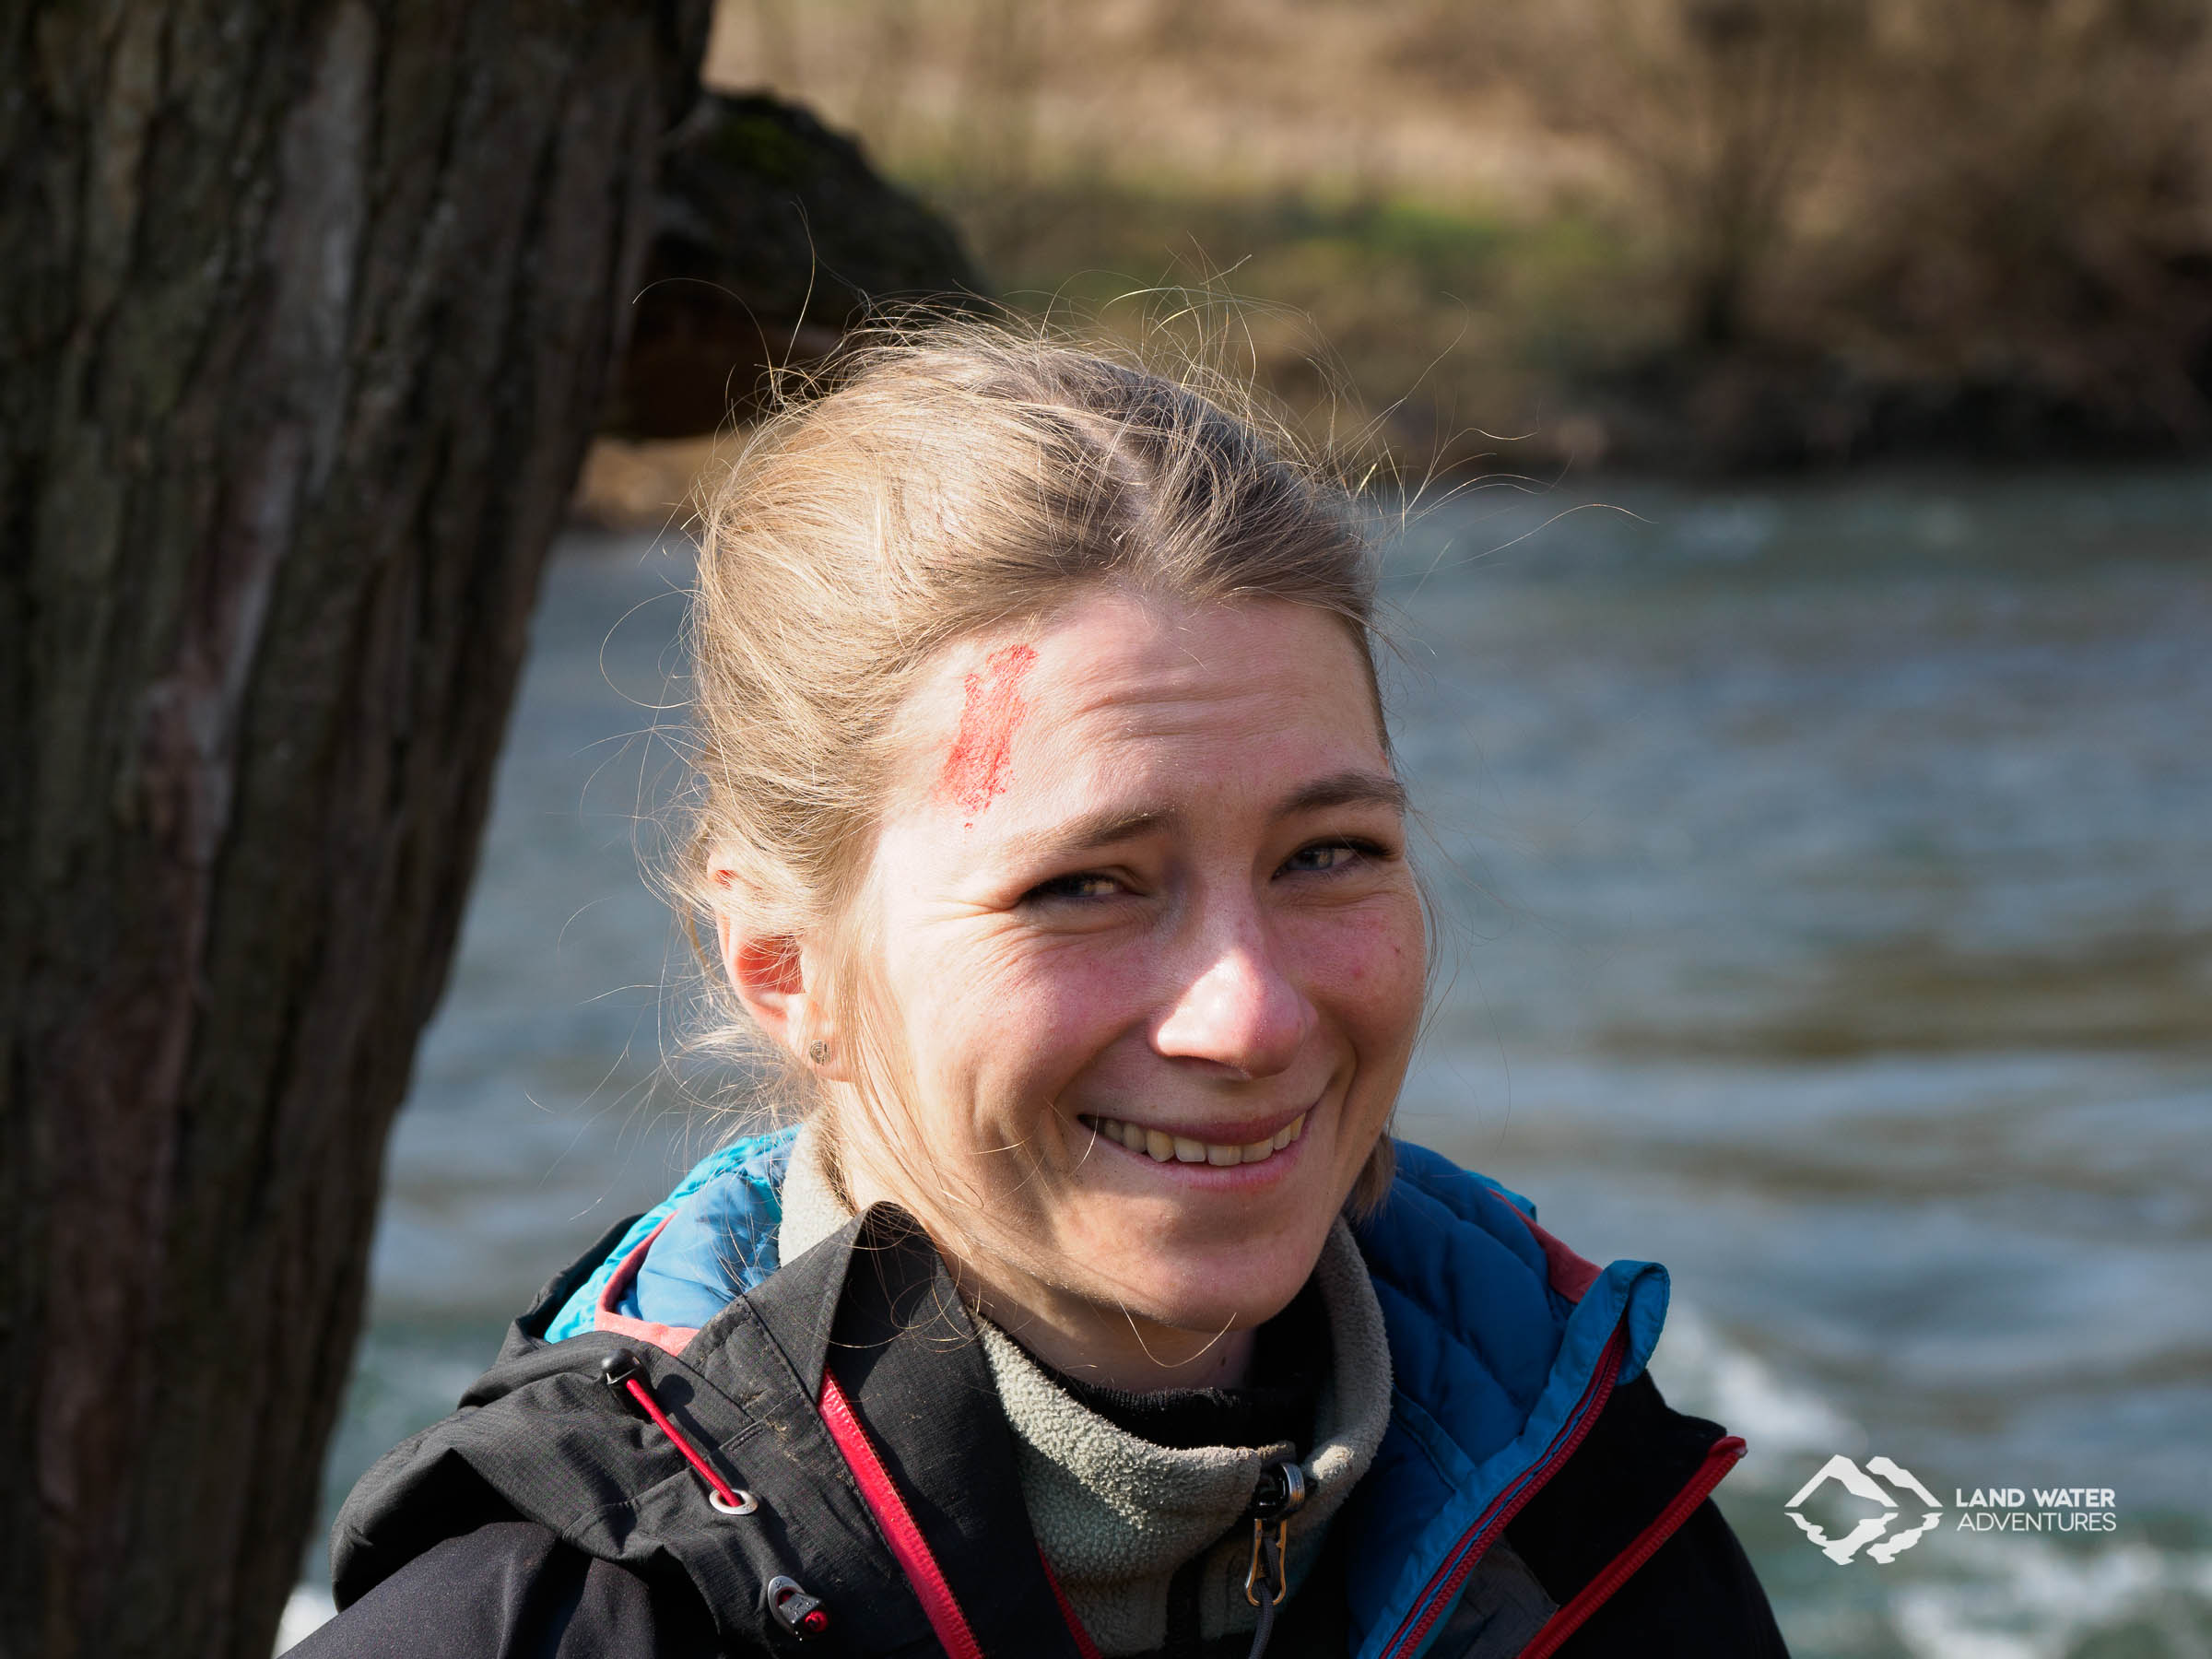 Opferdarstellerin Susanne © Land Water Adventures